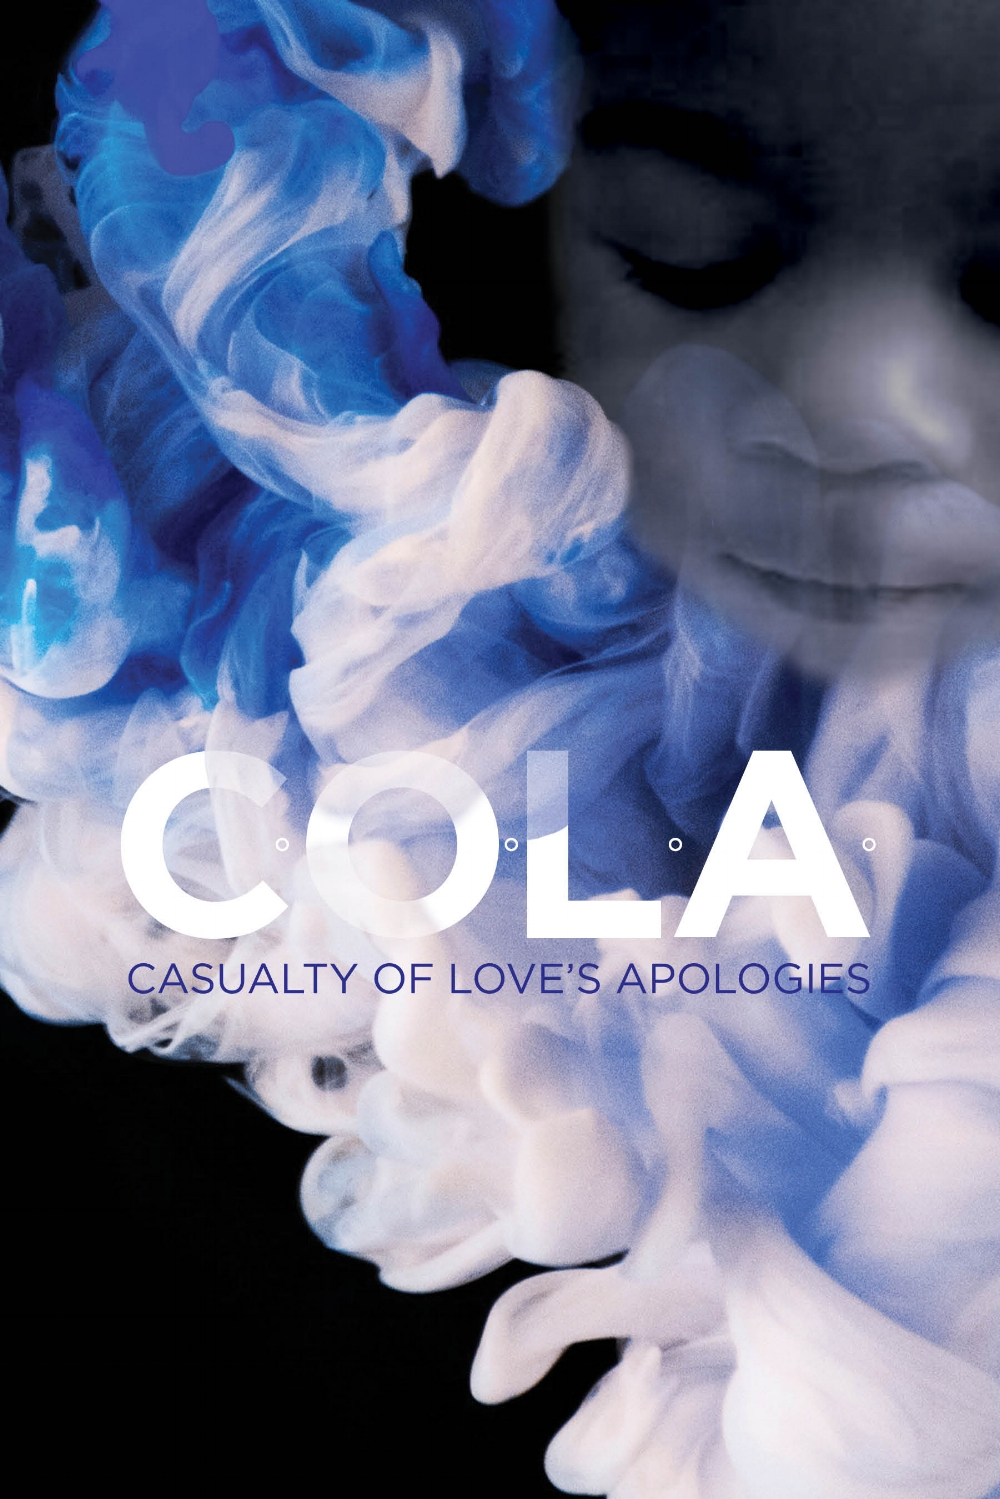 "Creative Director + Editor - ""Casualty of Love's Apologies"" by Cola Bennettpublished August 2018 Uplyfted Publishing"